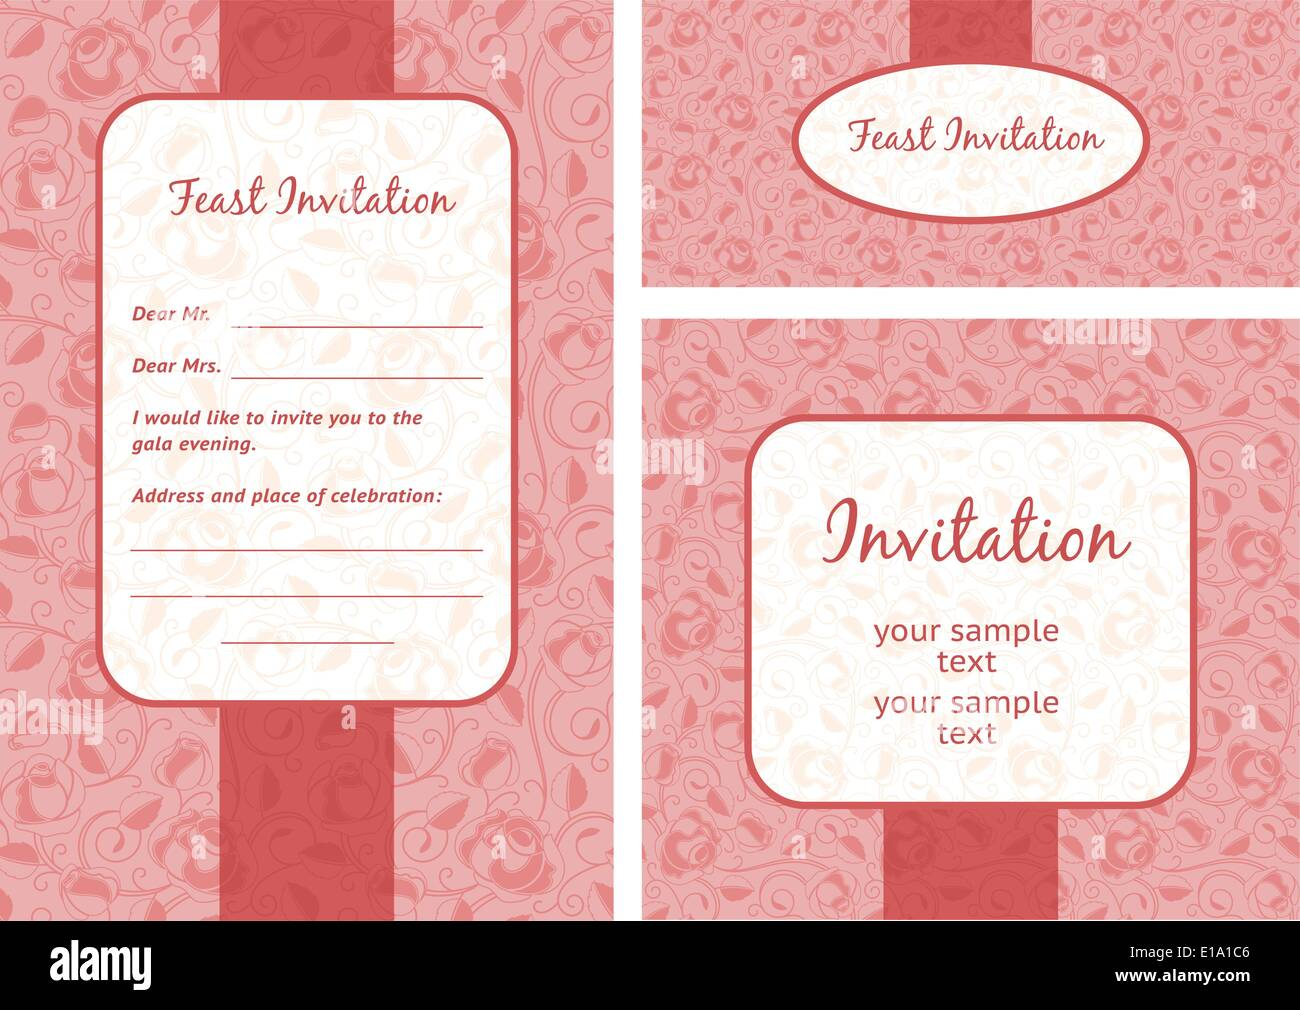 Wedding invitation template set of ornate vector frames stock wedding invitation template set of ornate vector frames stopboris Gallery